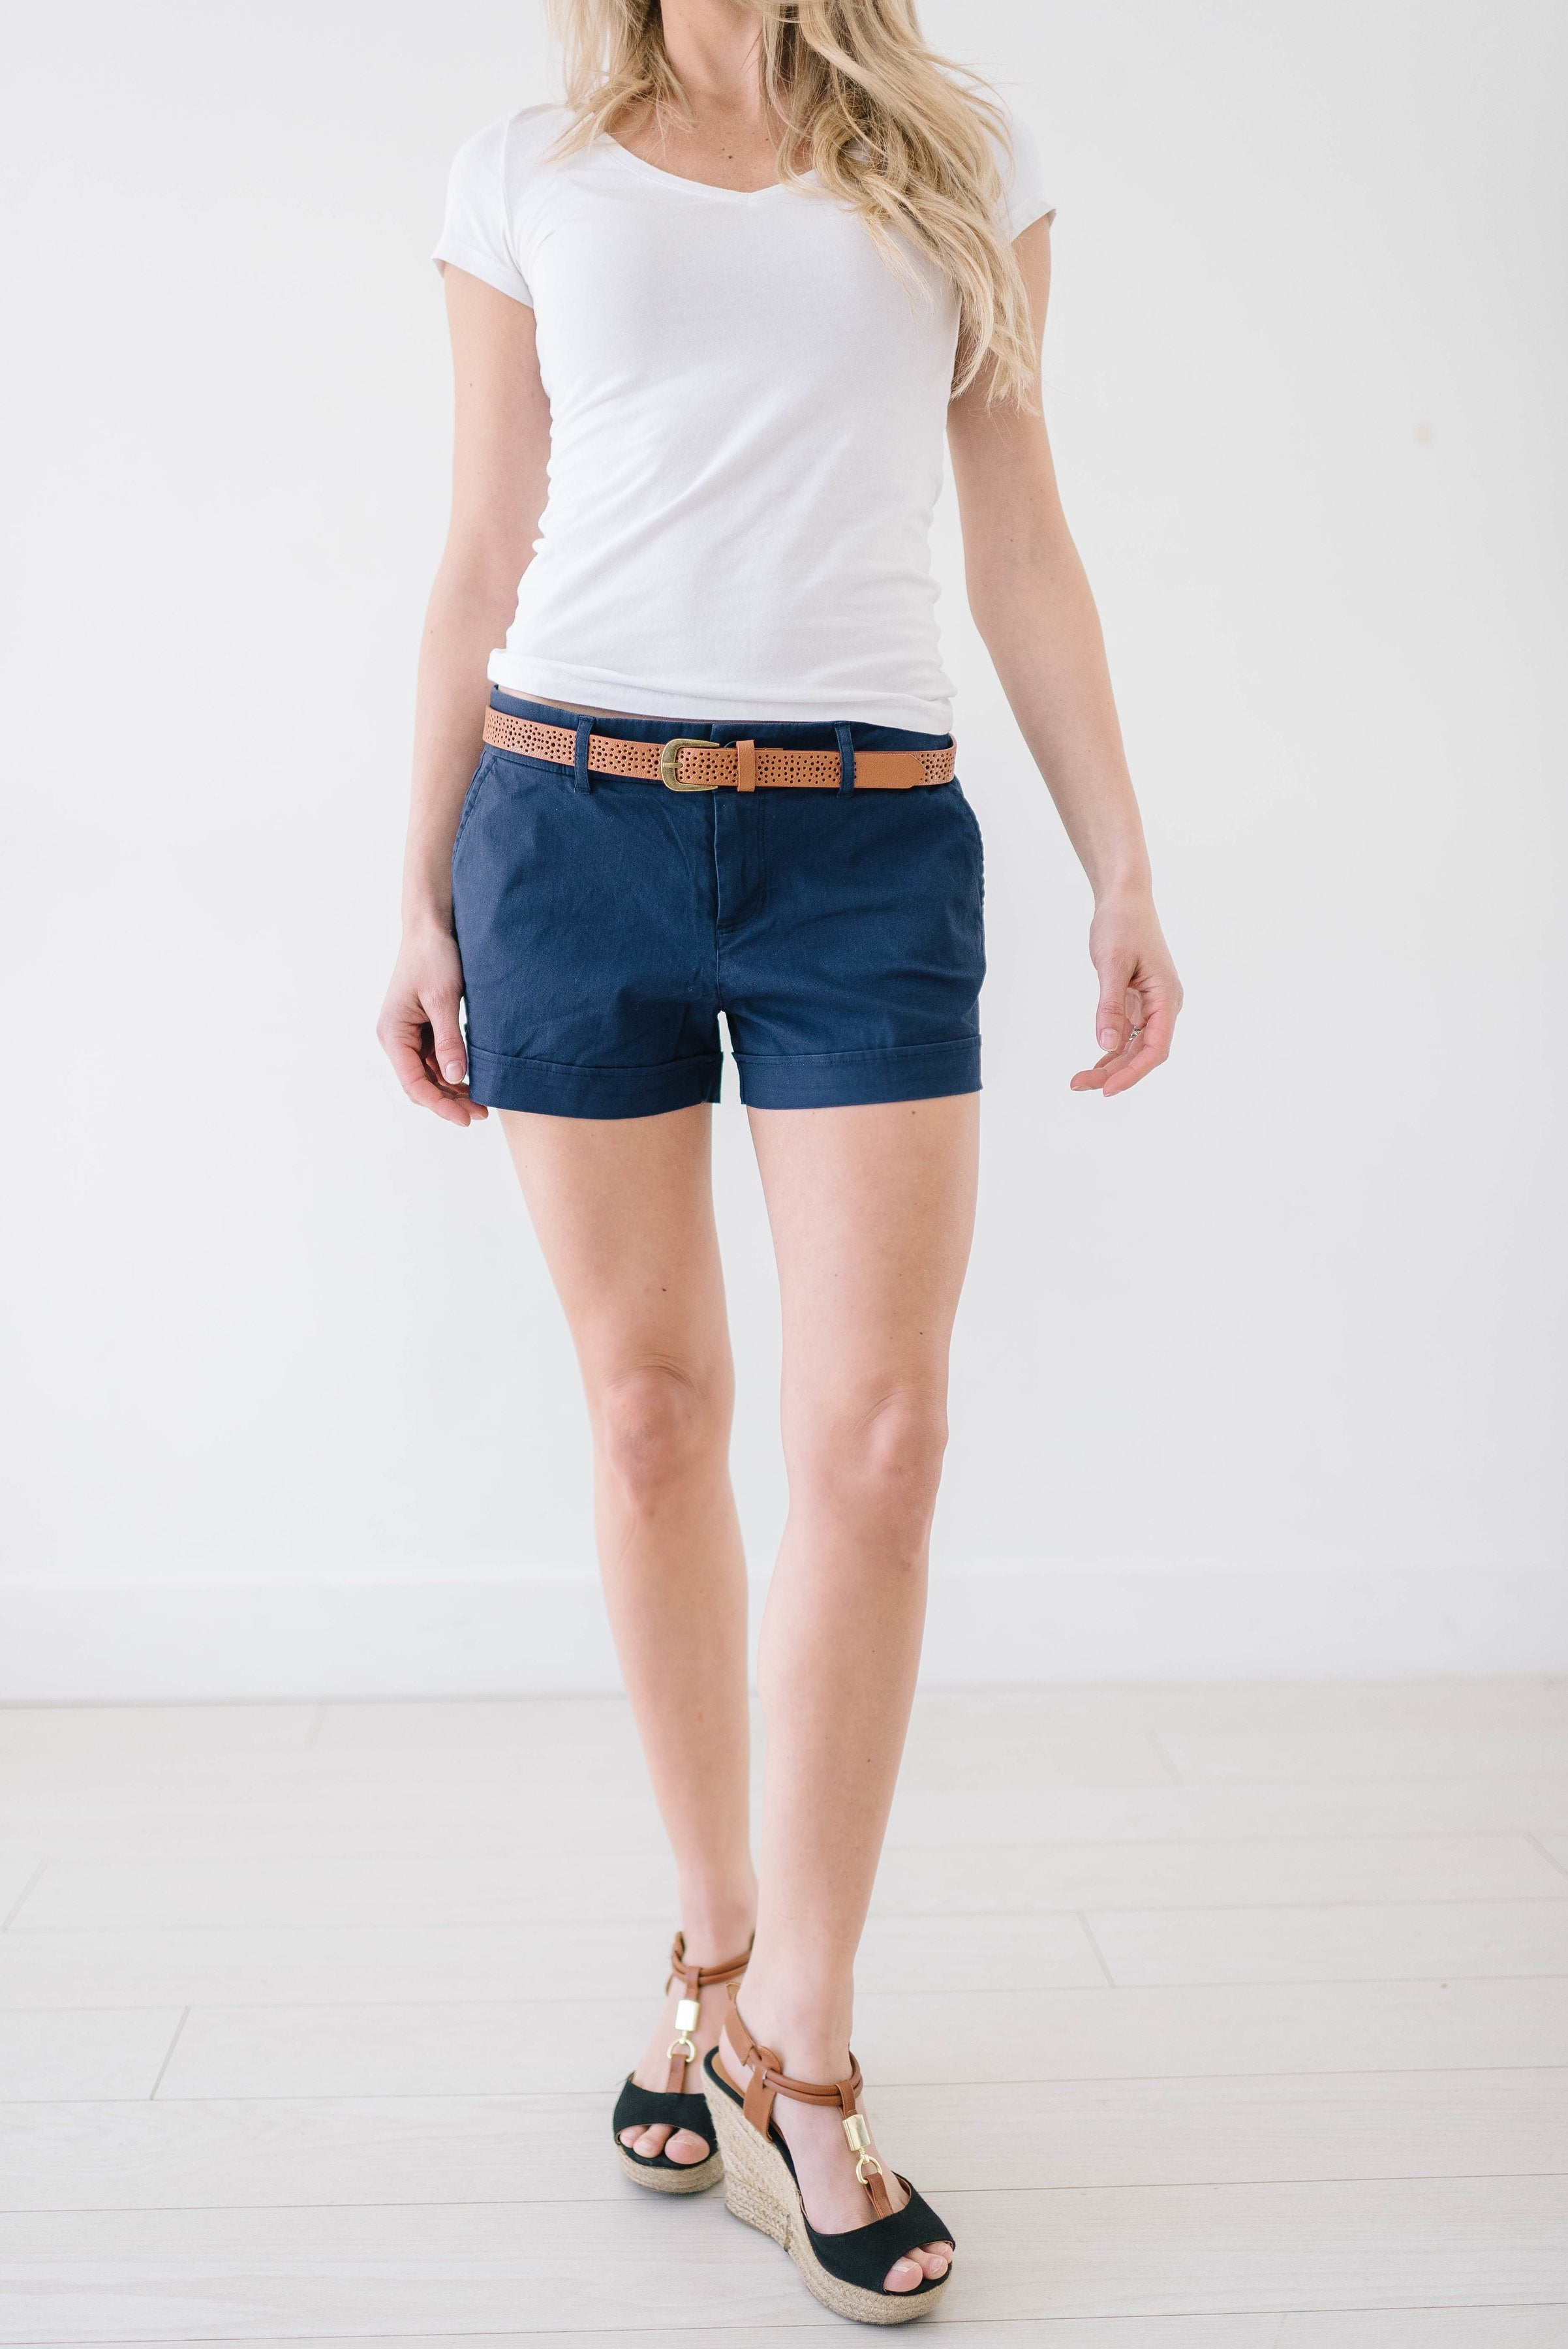 Sunset Beach Shorts Navy